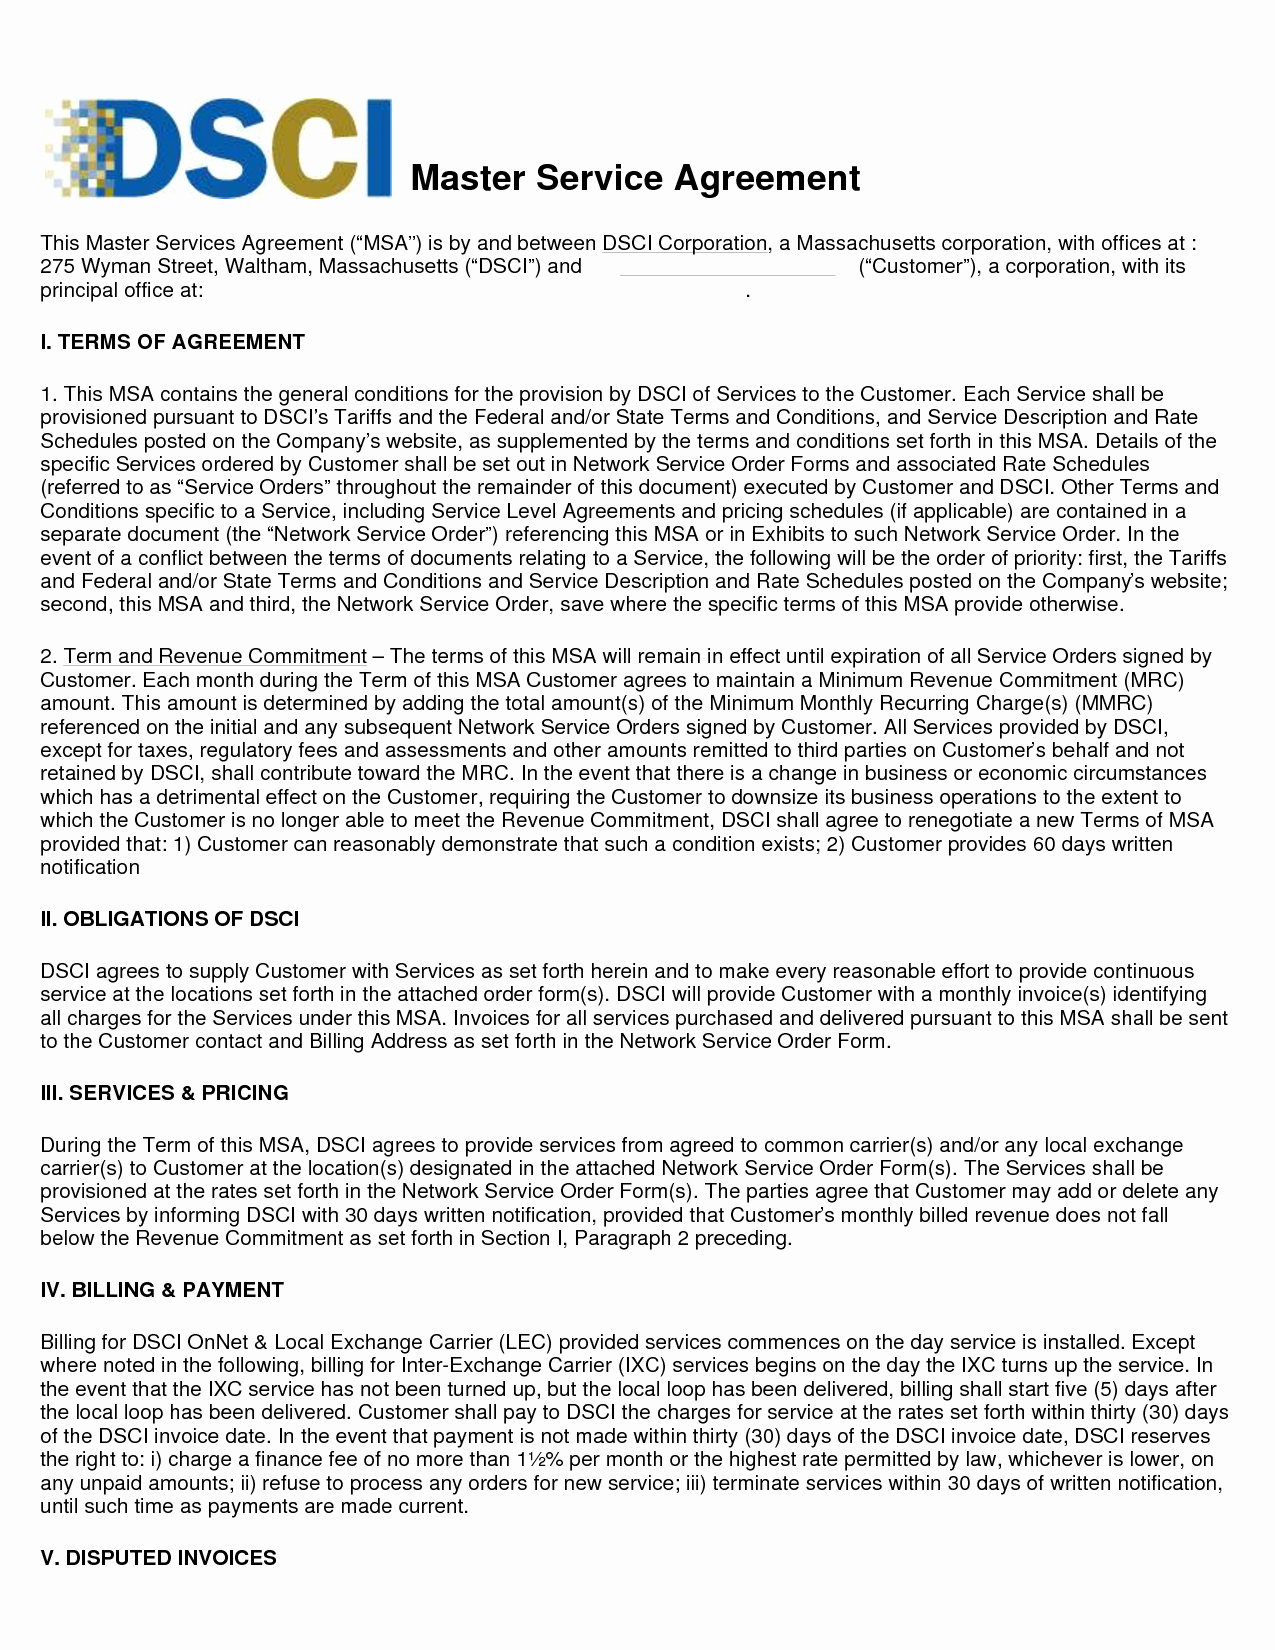 Master Services Agreement Template Awesome Agreement Template Category Page 29 Efoza